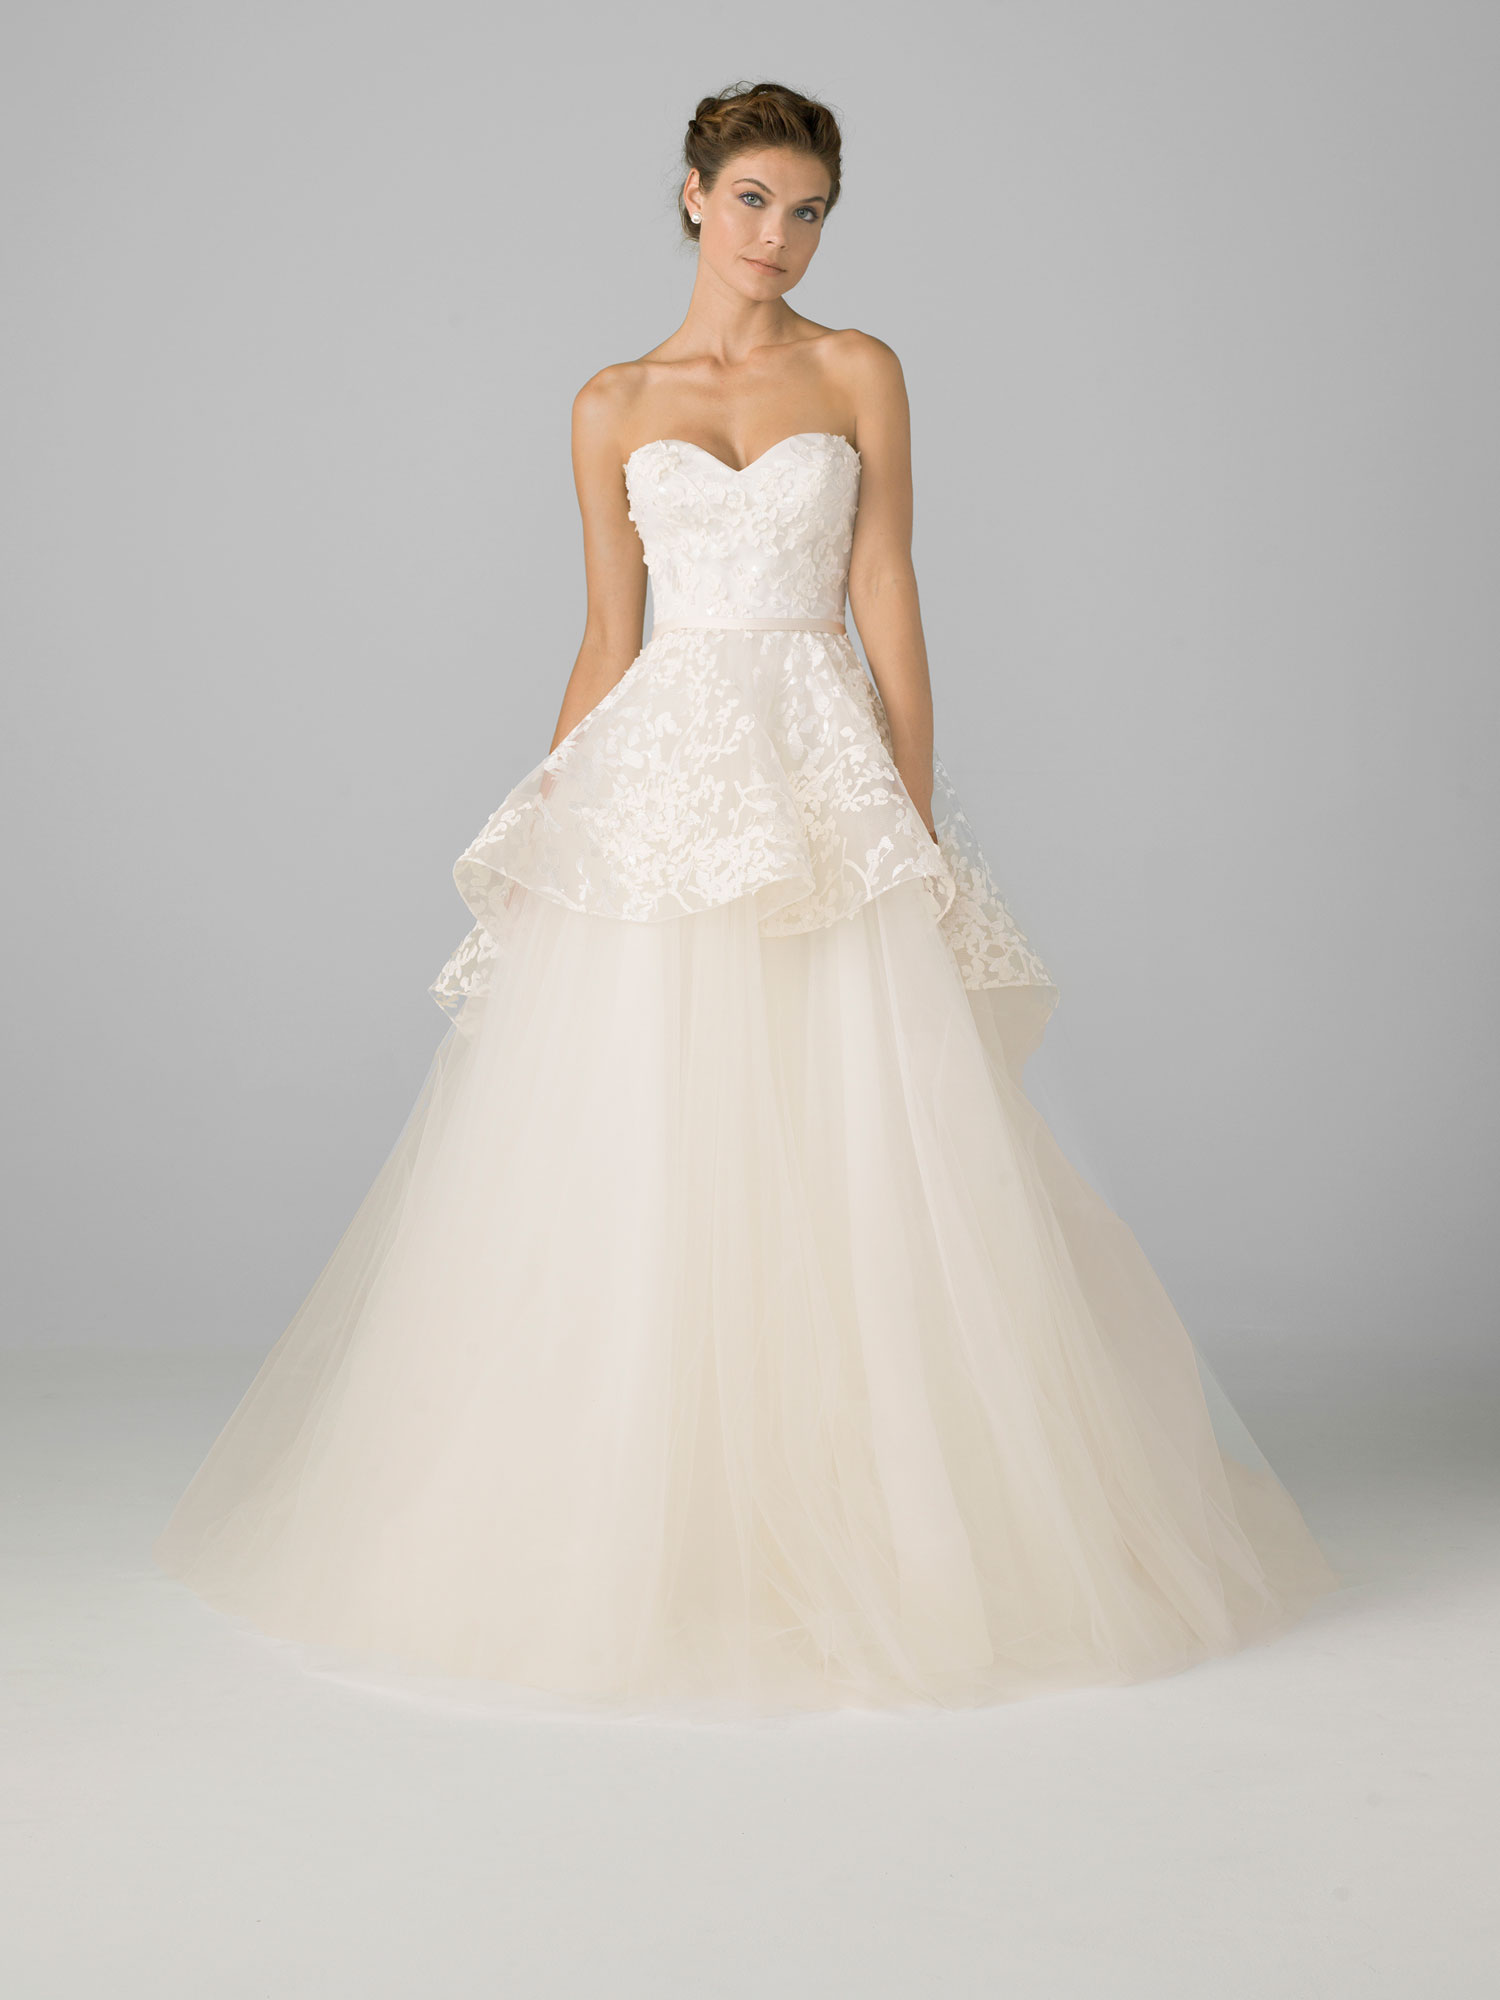 Sweetheart neckline wedding dress bridal gown with peplum detail by Azul by Liancarlo